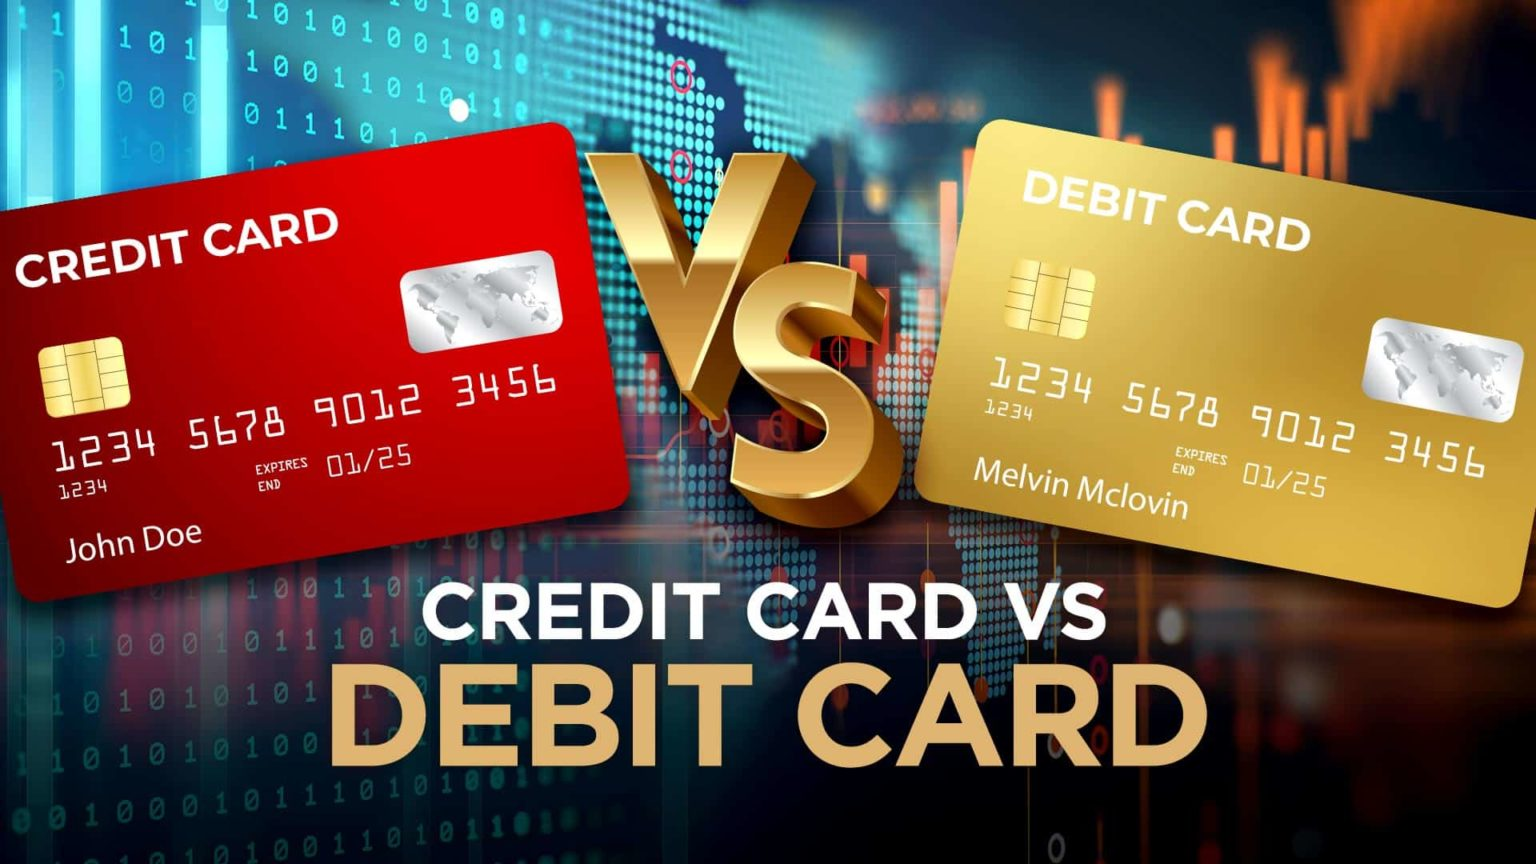 Debit cards set a record: higher transaction volumes than credit cards